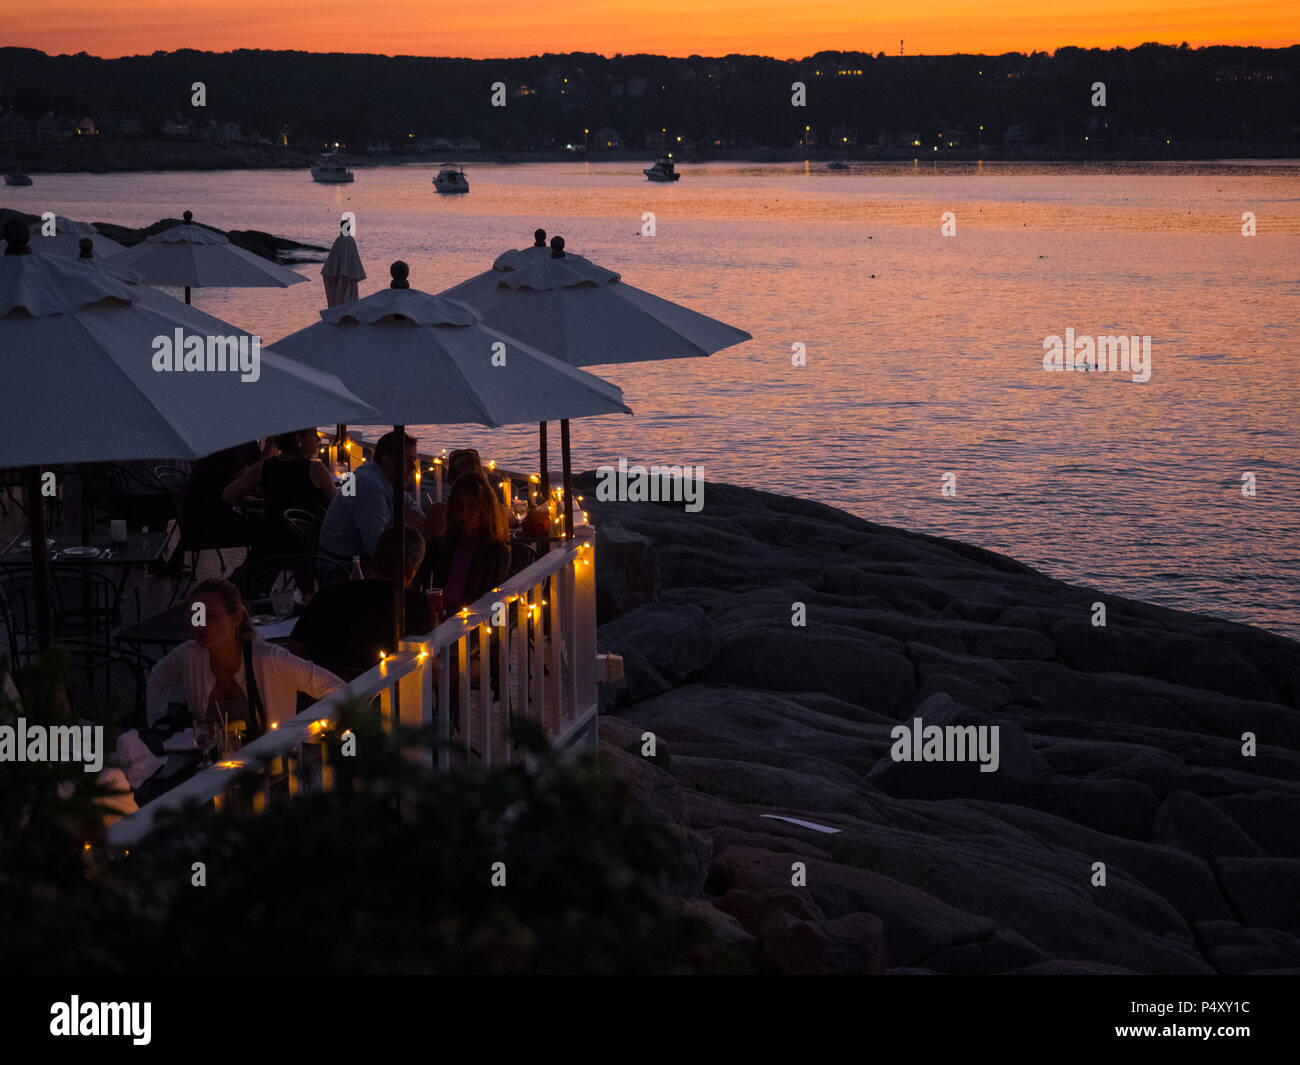 Sunset outdoor dining on the water at My Place by the Sea restaurant in Rockport, MA. - Stock Image